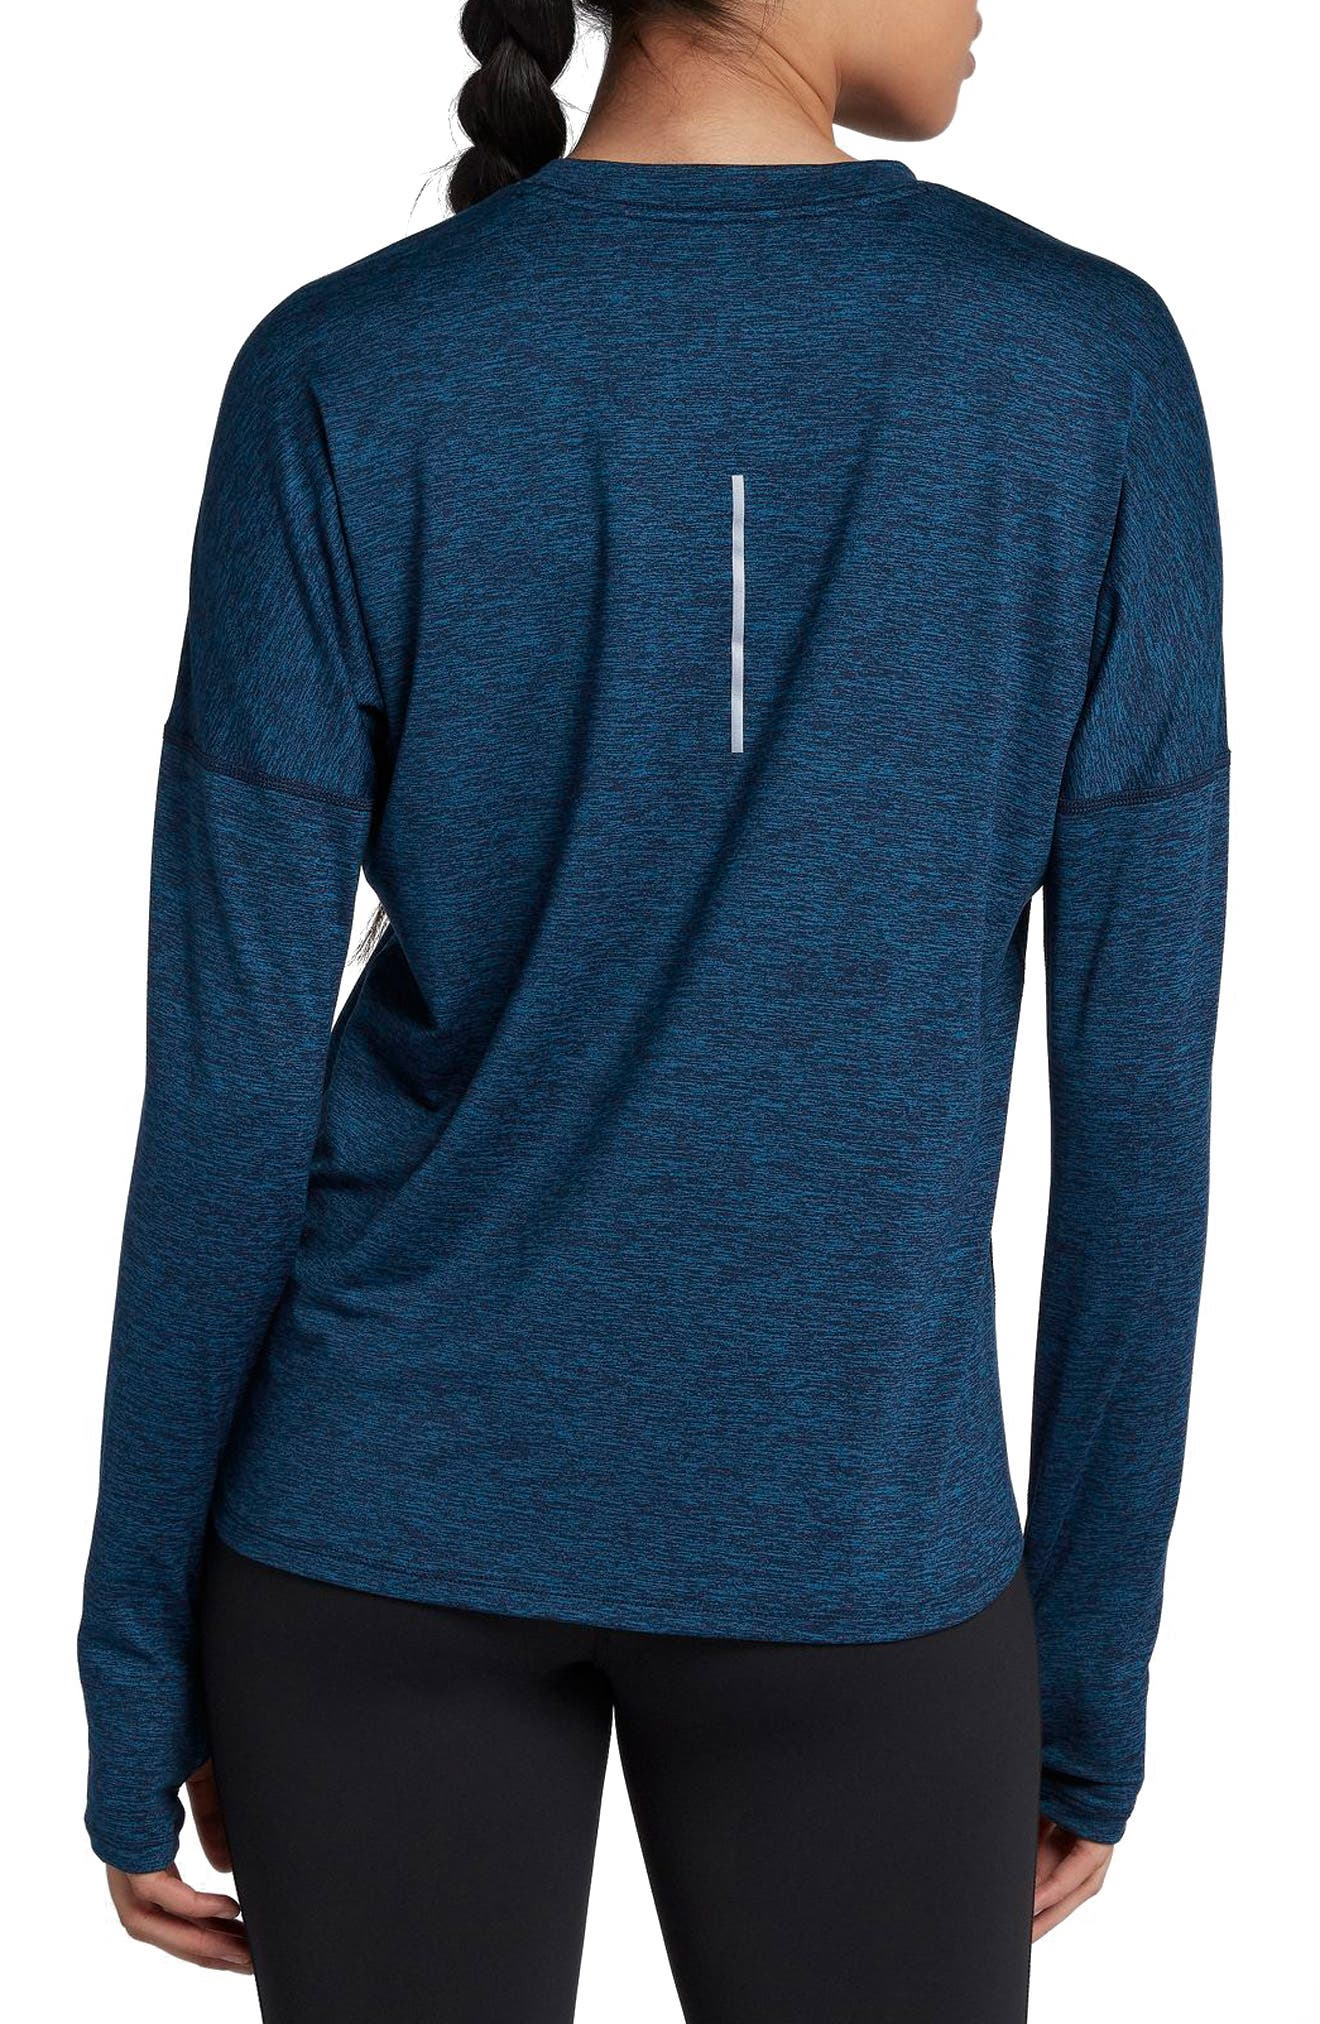 Dry Element Long Sleeve Top,                             Alternate thumbnail 6, color,